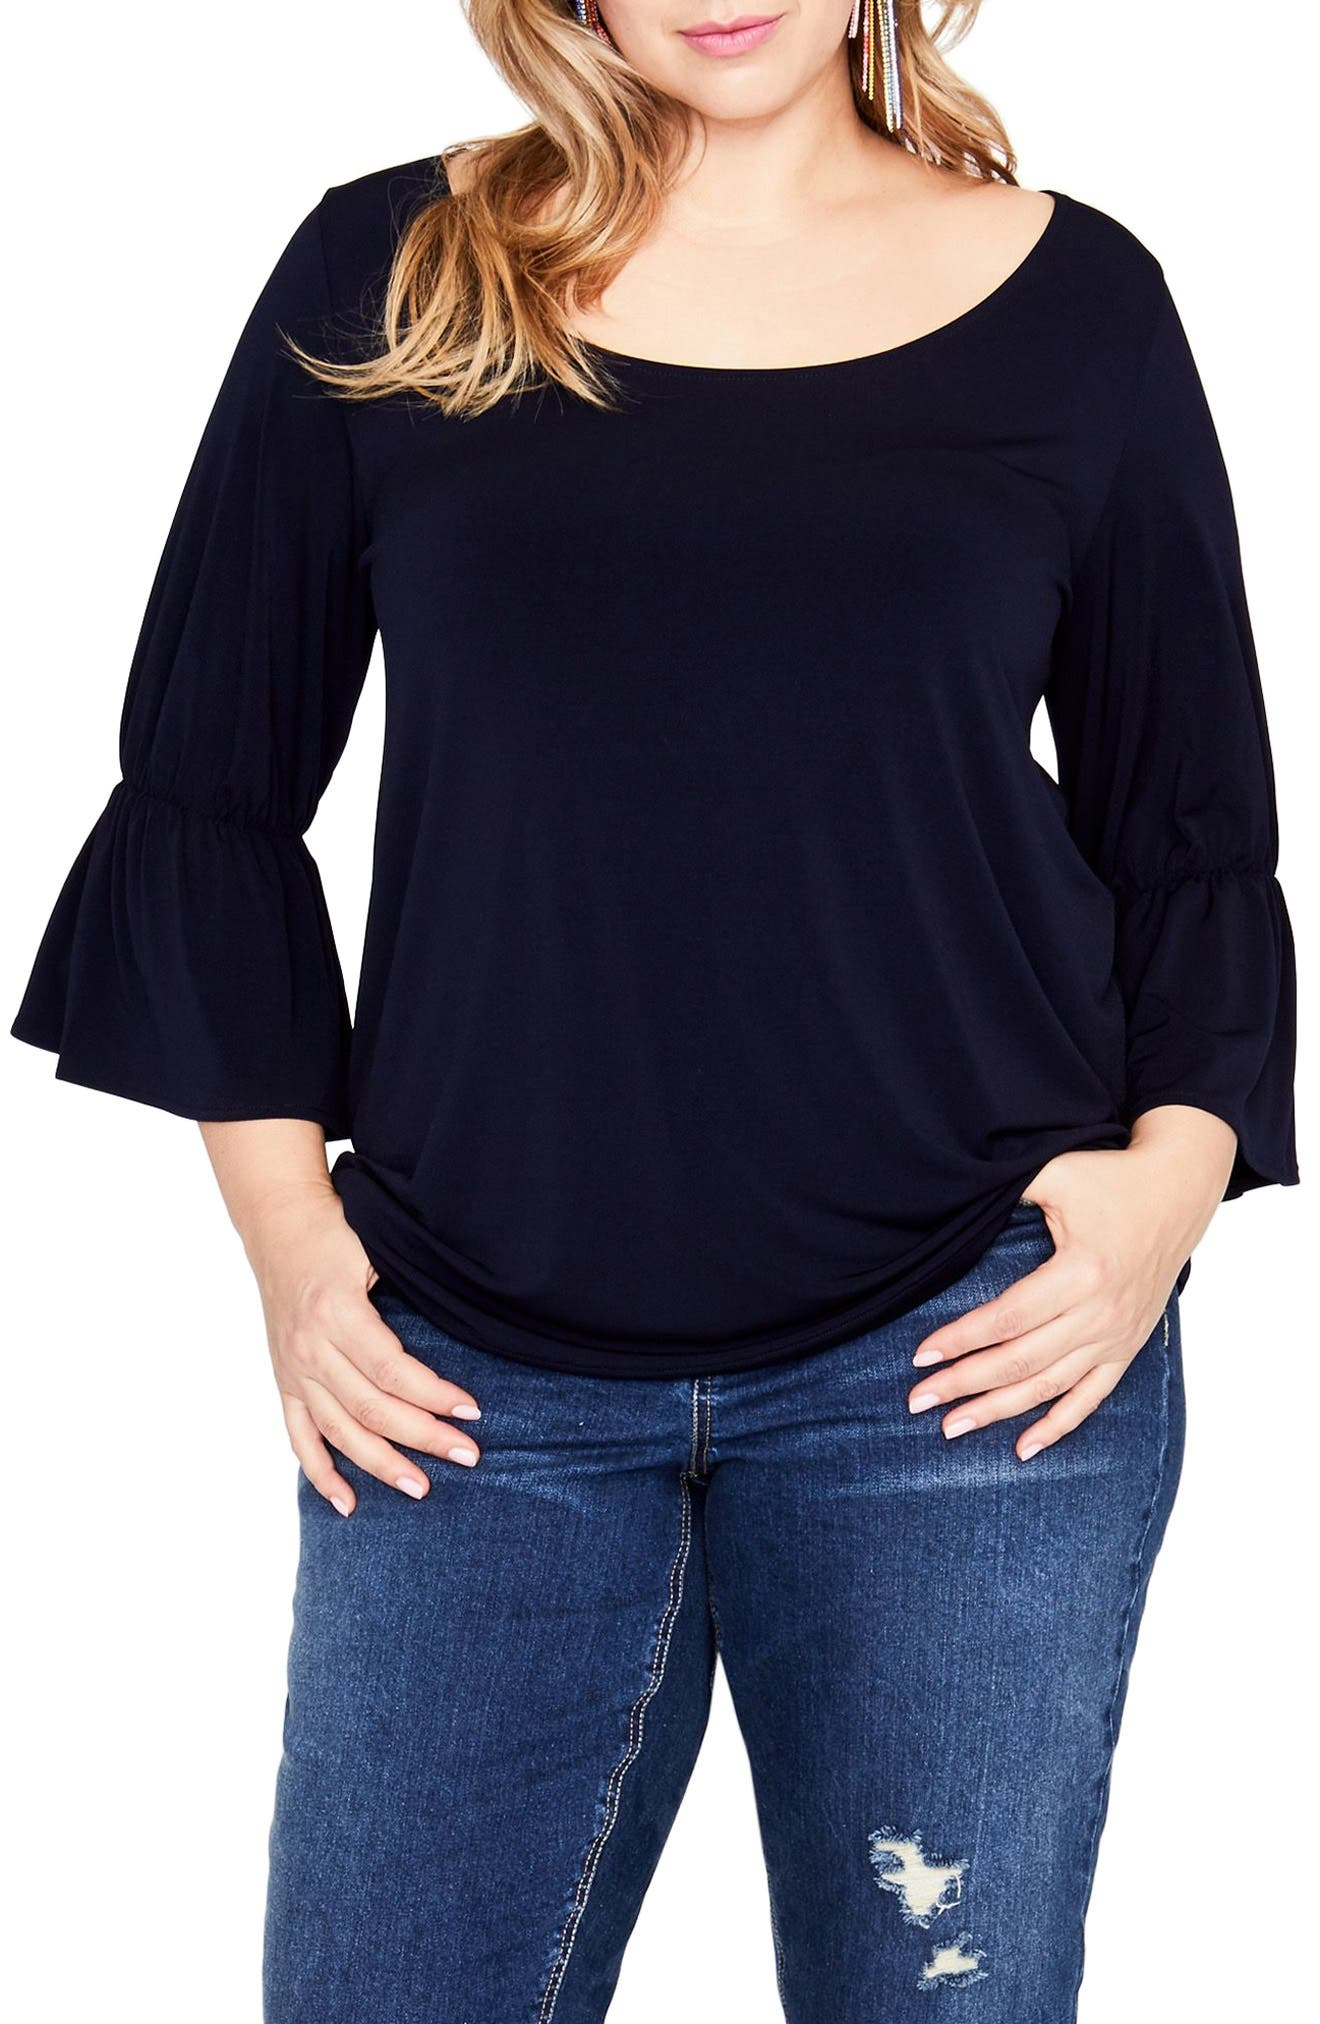 Ruffle Sleeve Top,                         Main,                         color, True Navy